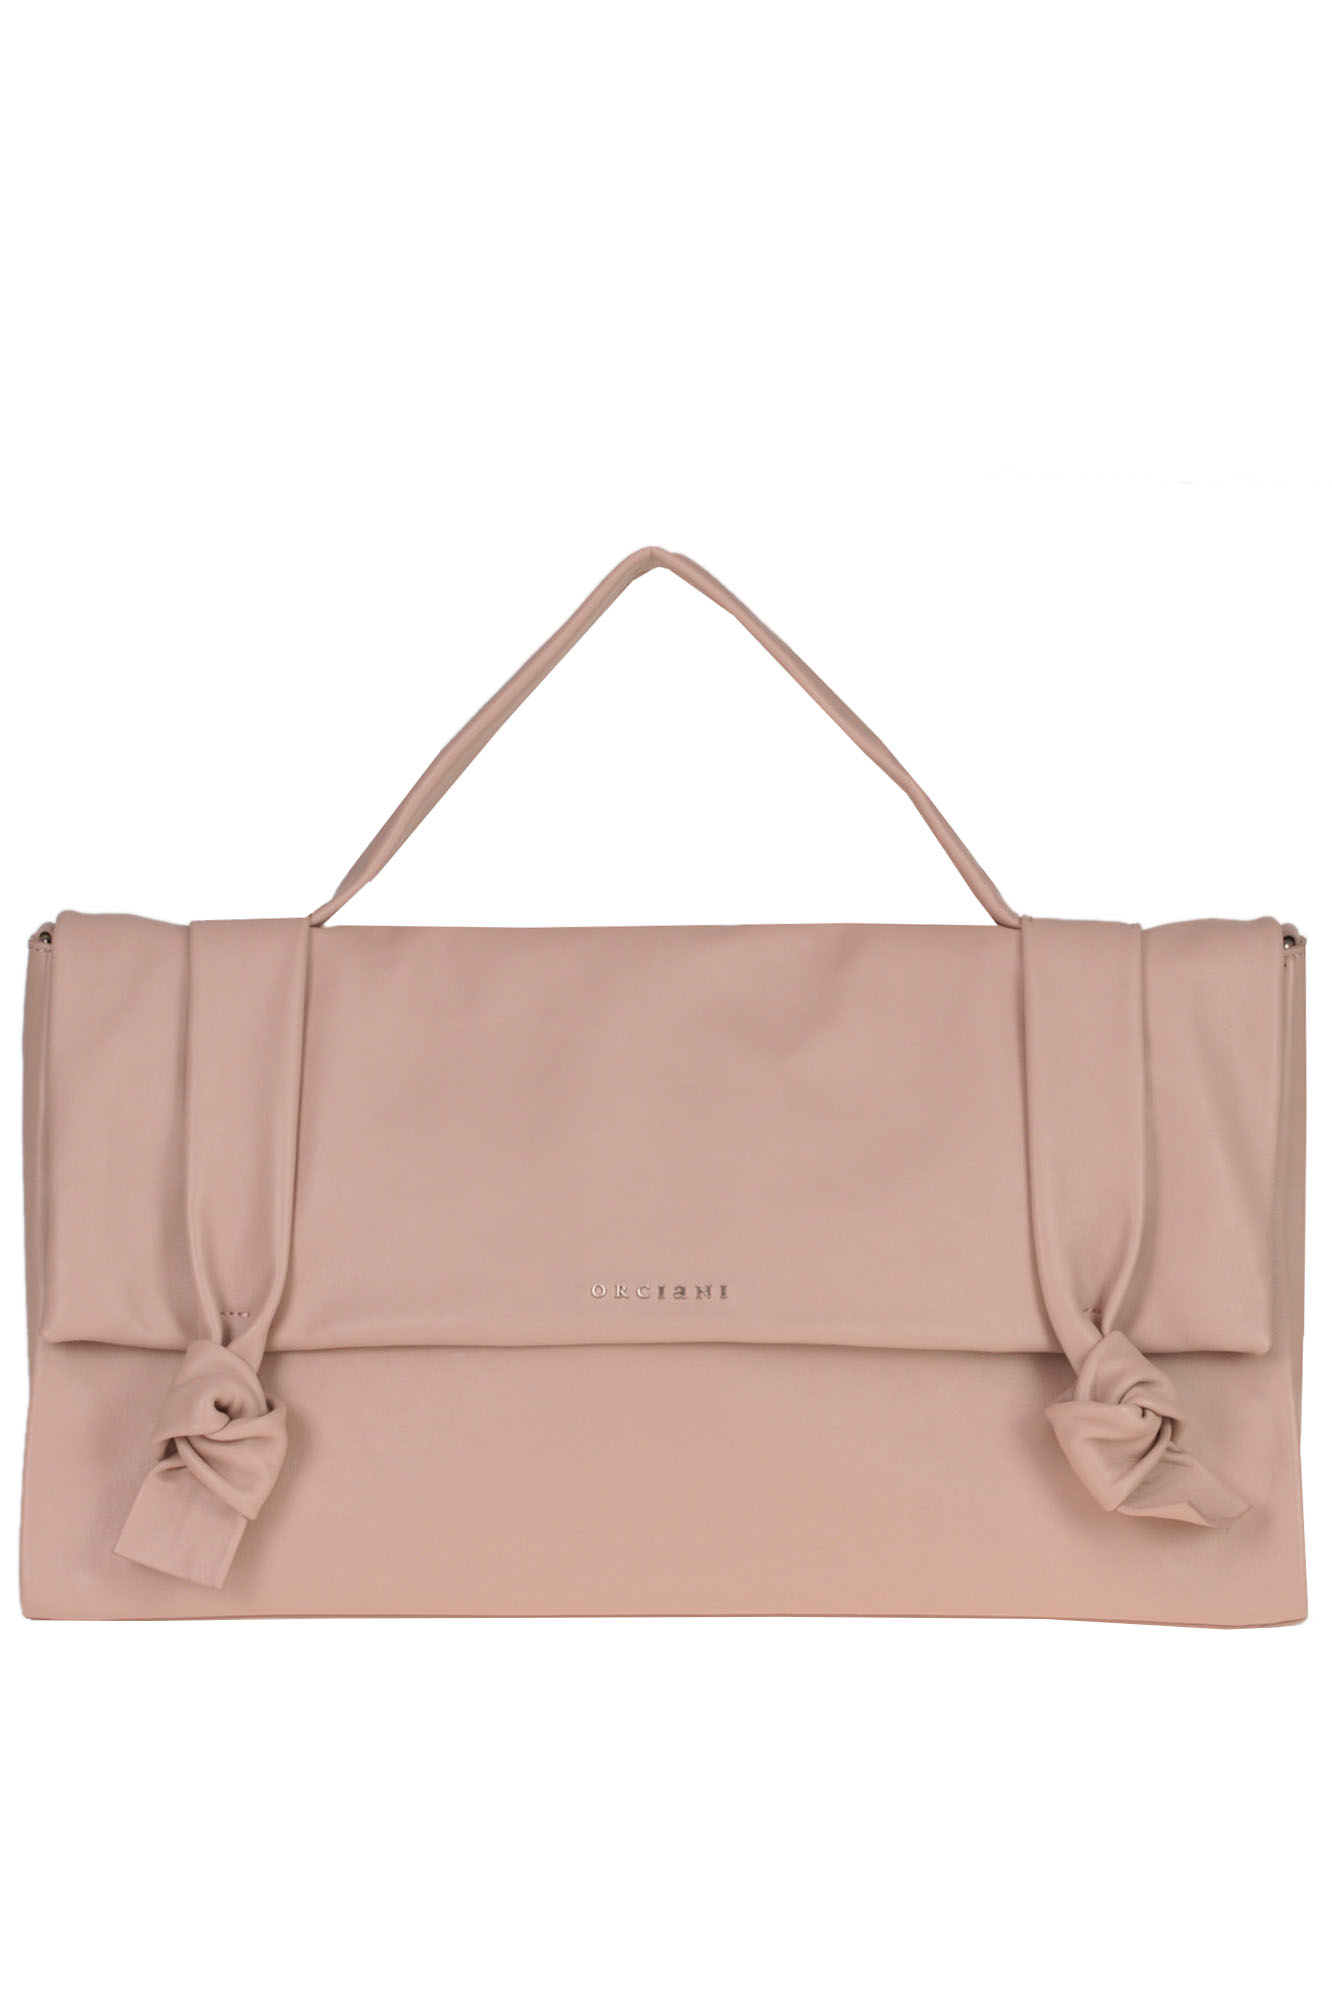 Orciani 'Bella' Leather Bag In Cipria